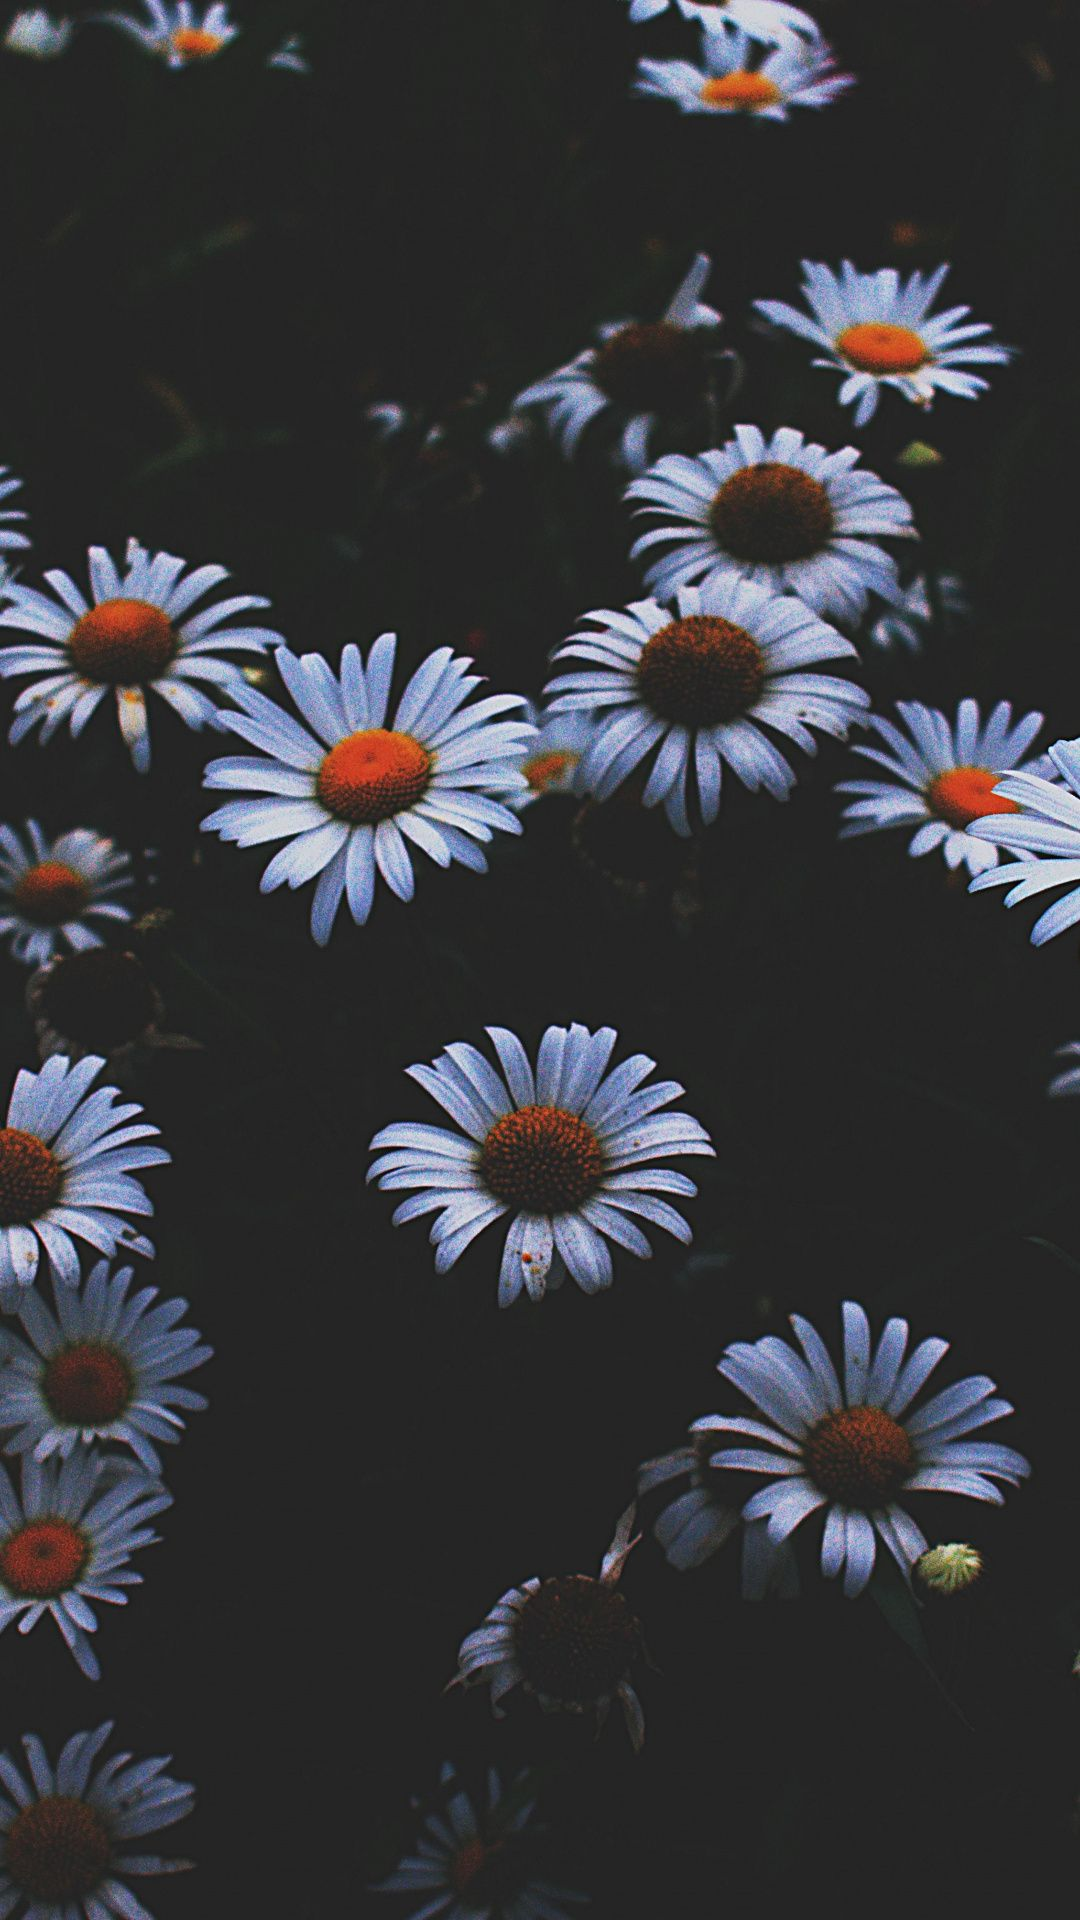 Daisy White Flowers Plants 1080x1920 Wallpaper Flower Phone Wallpaper Iphone Wallpaper Flower Wallpaper